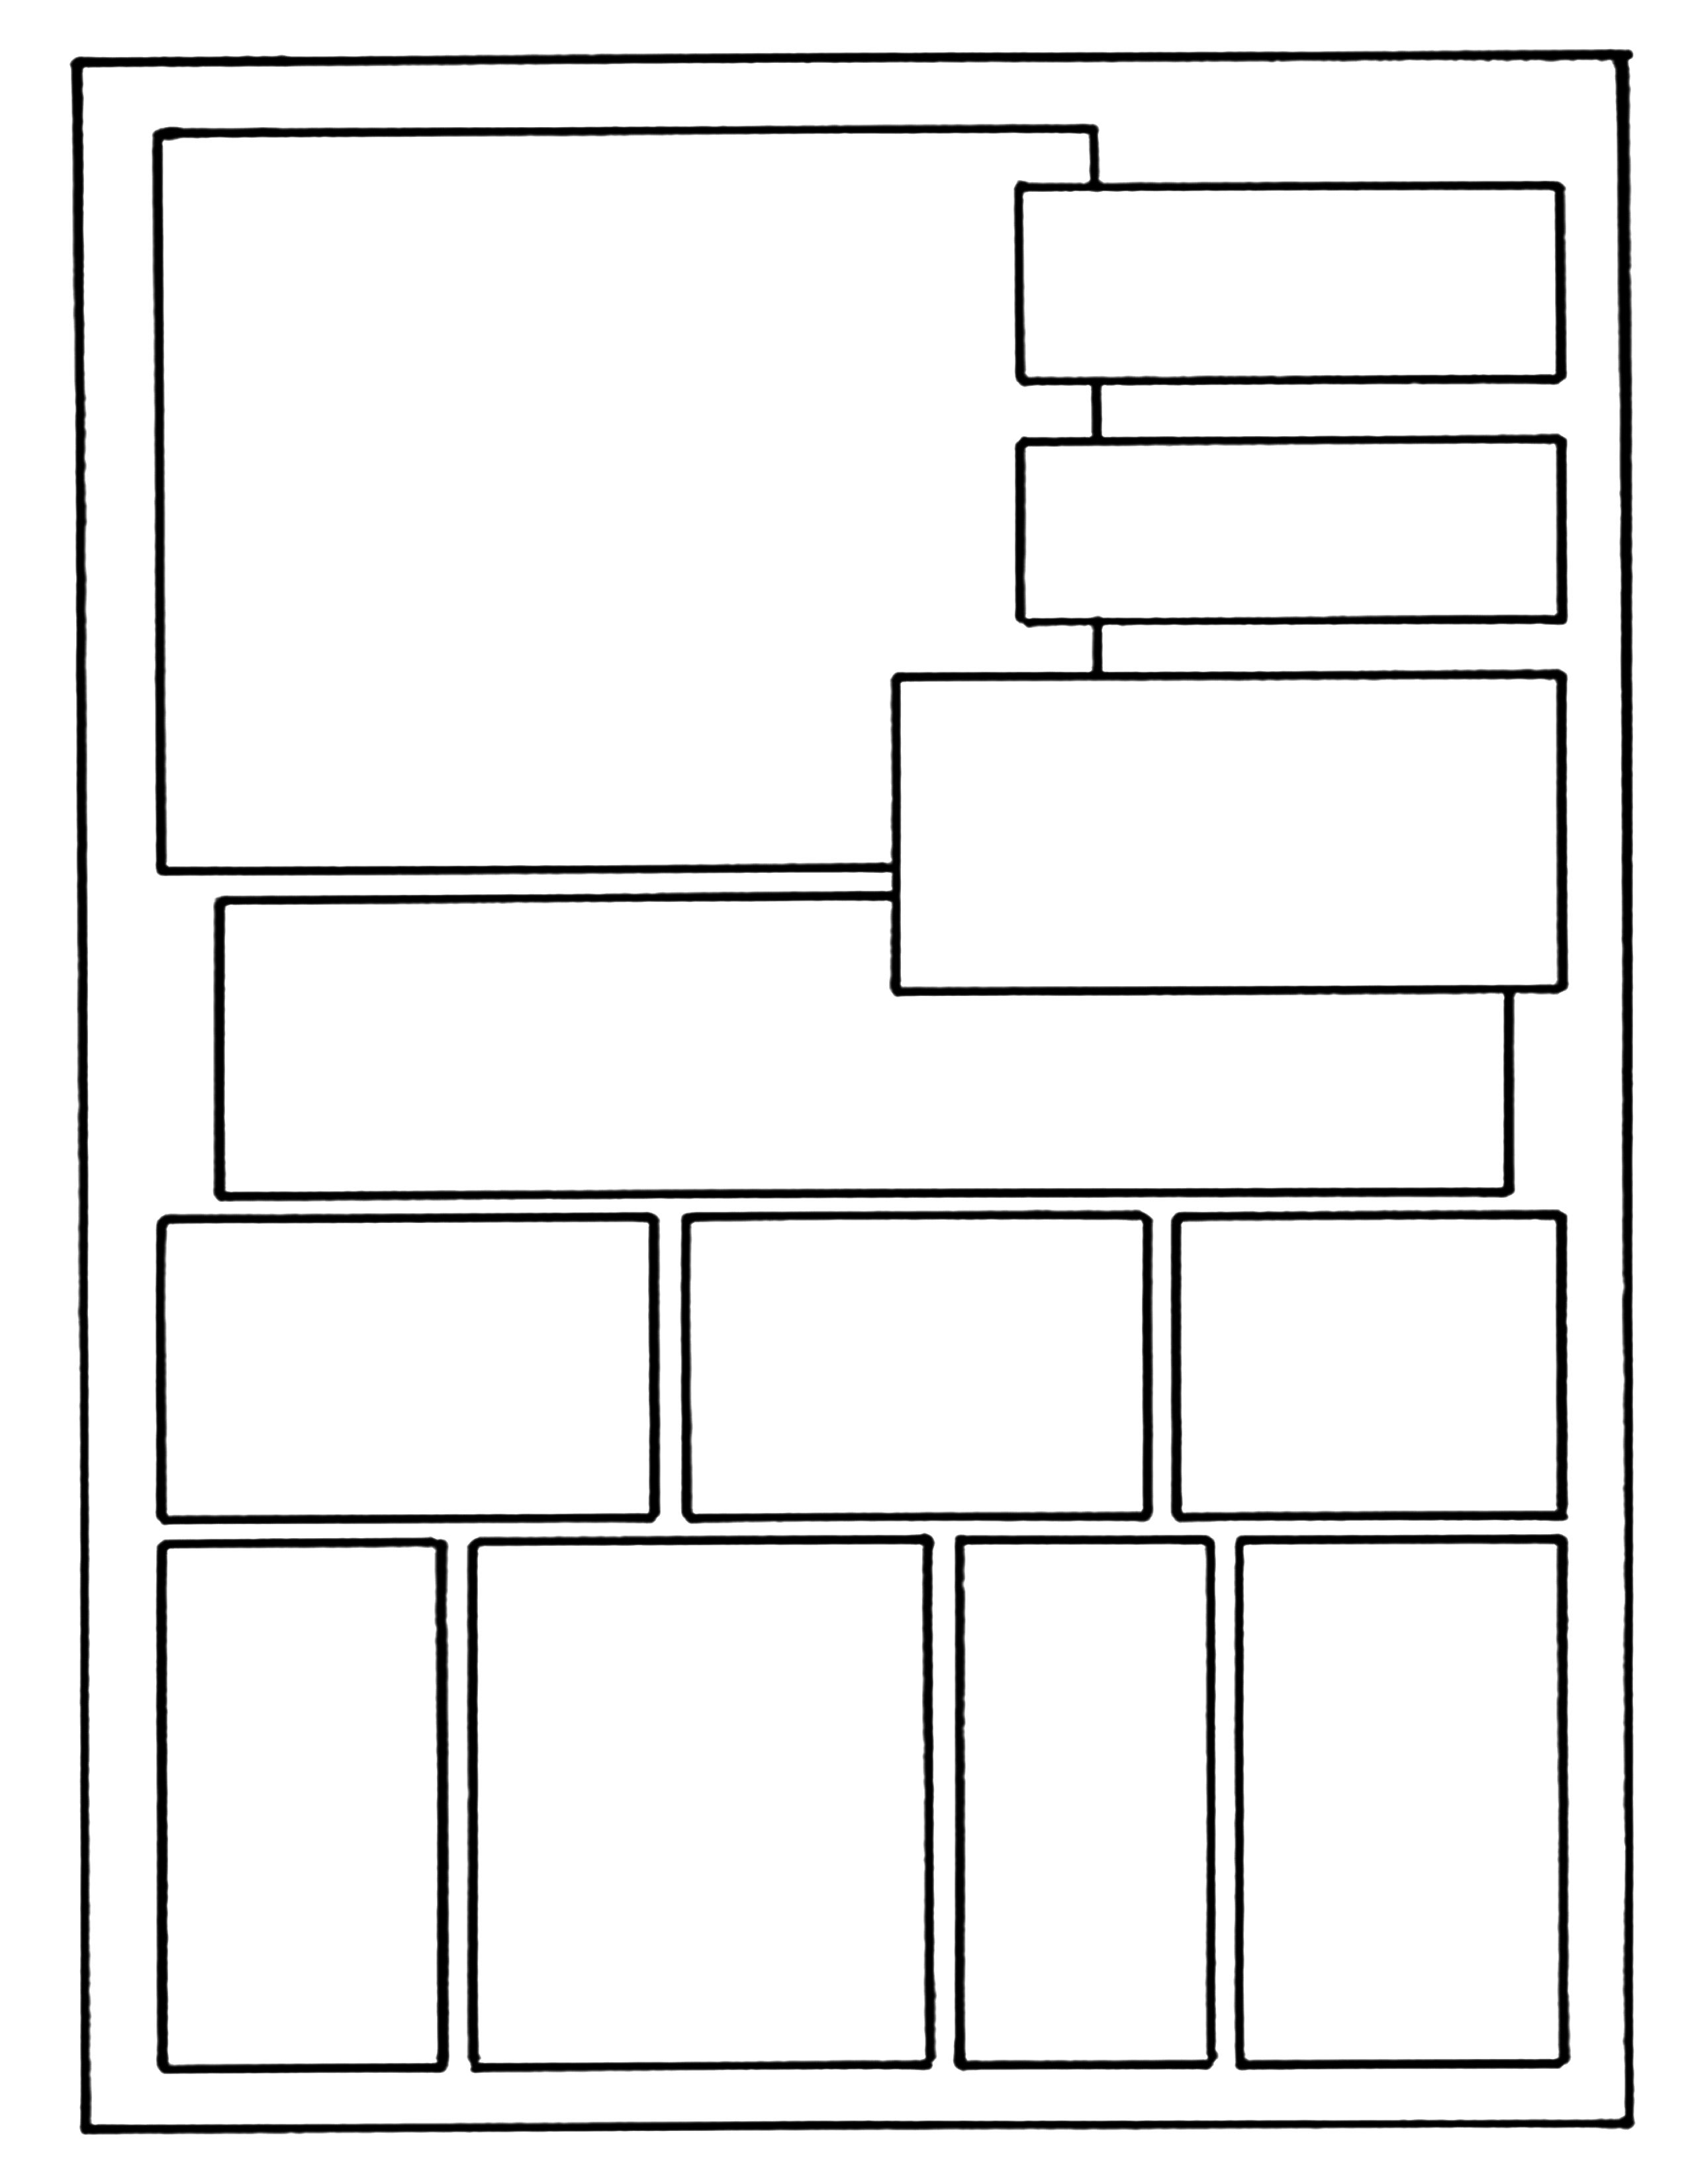 layout on 8 /1 x 11 example comic book layout | Superhero